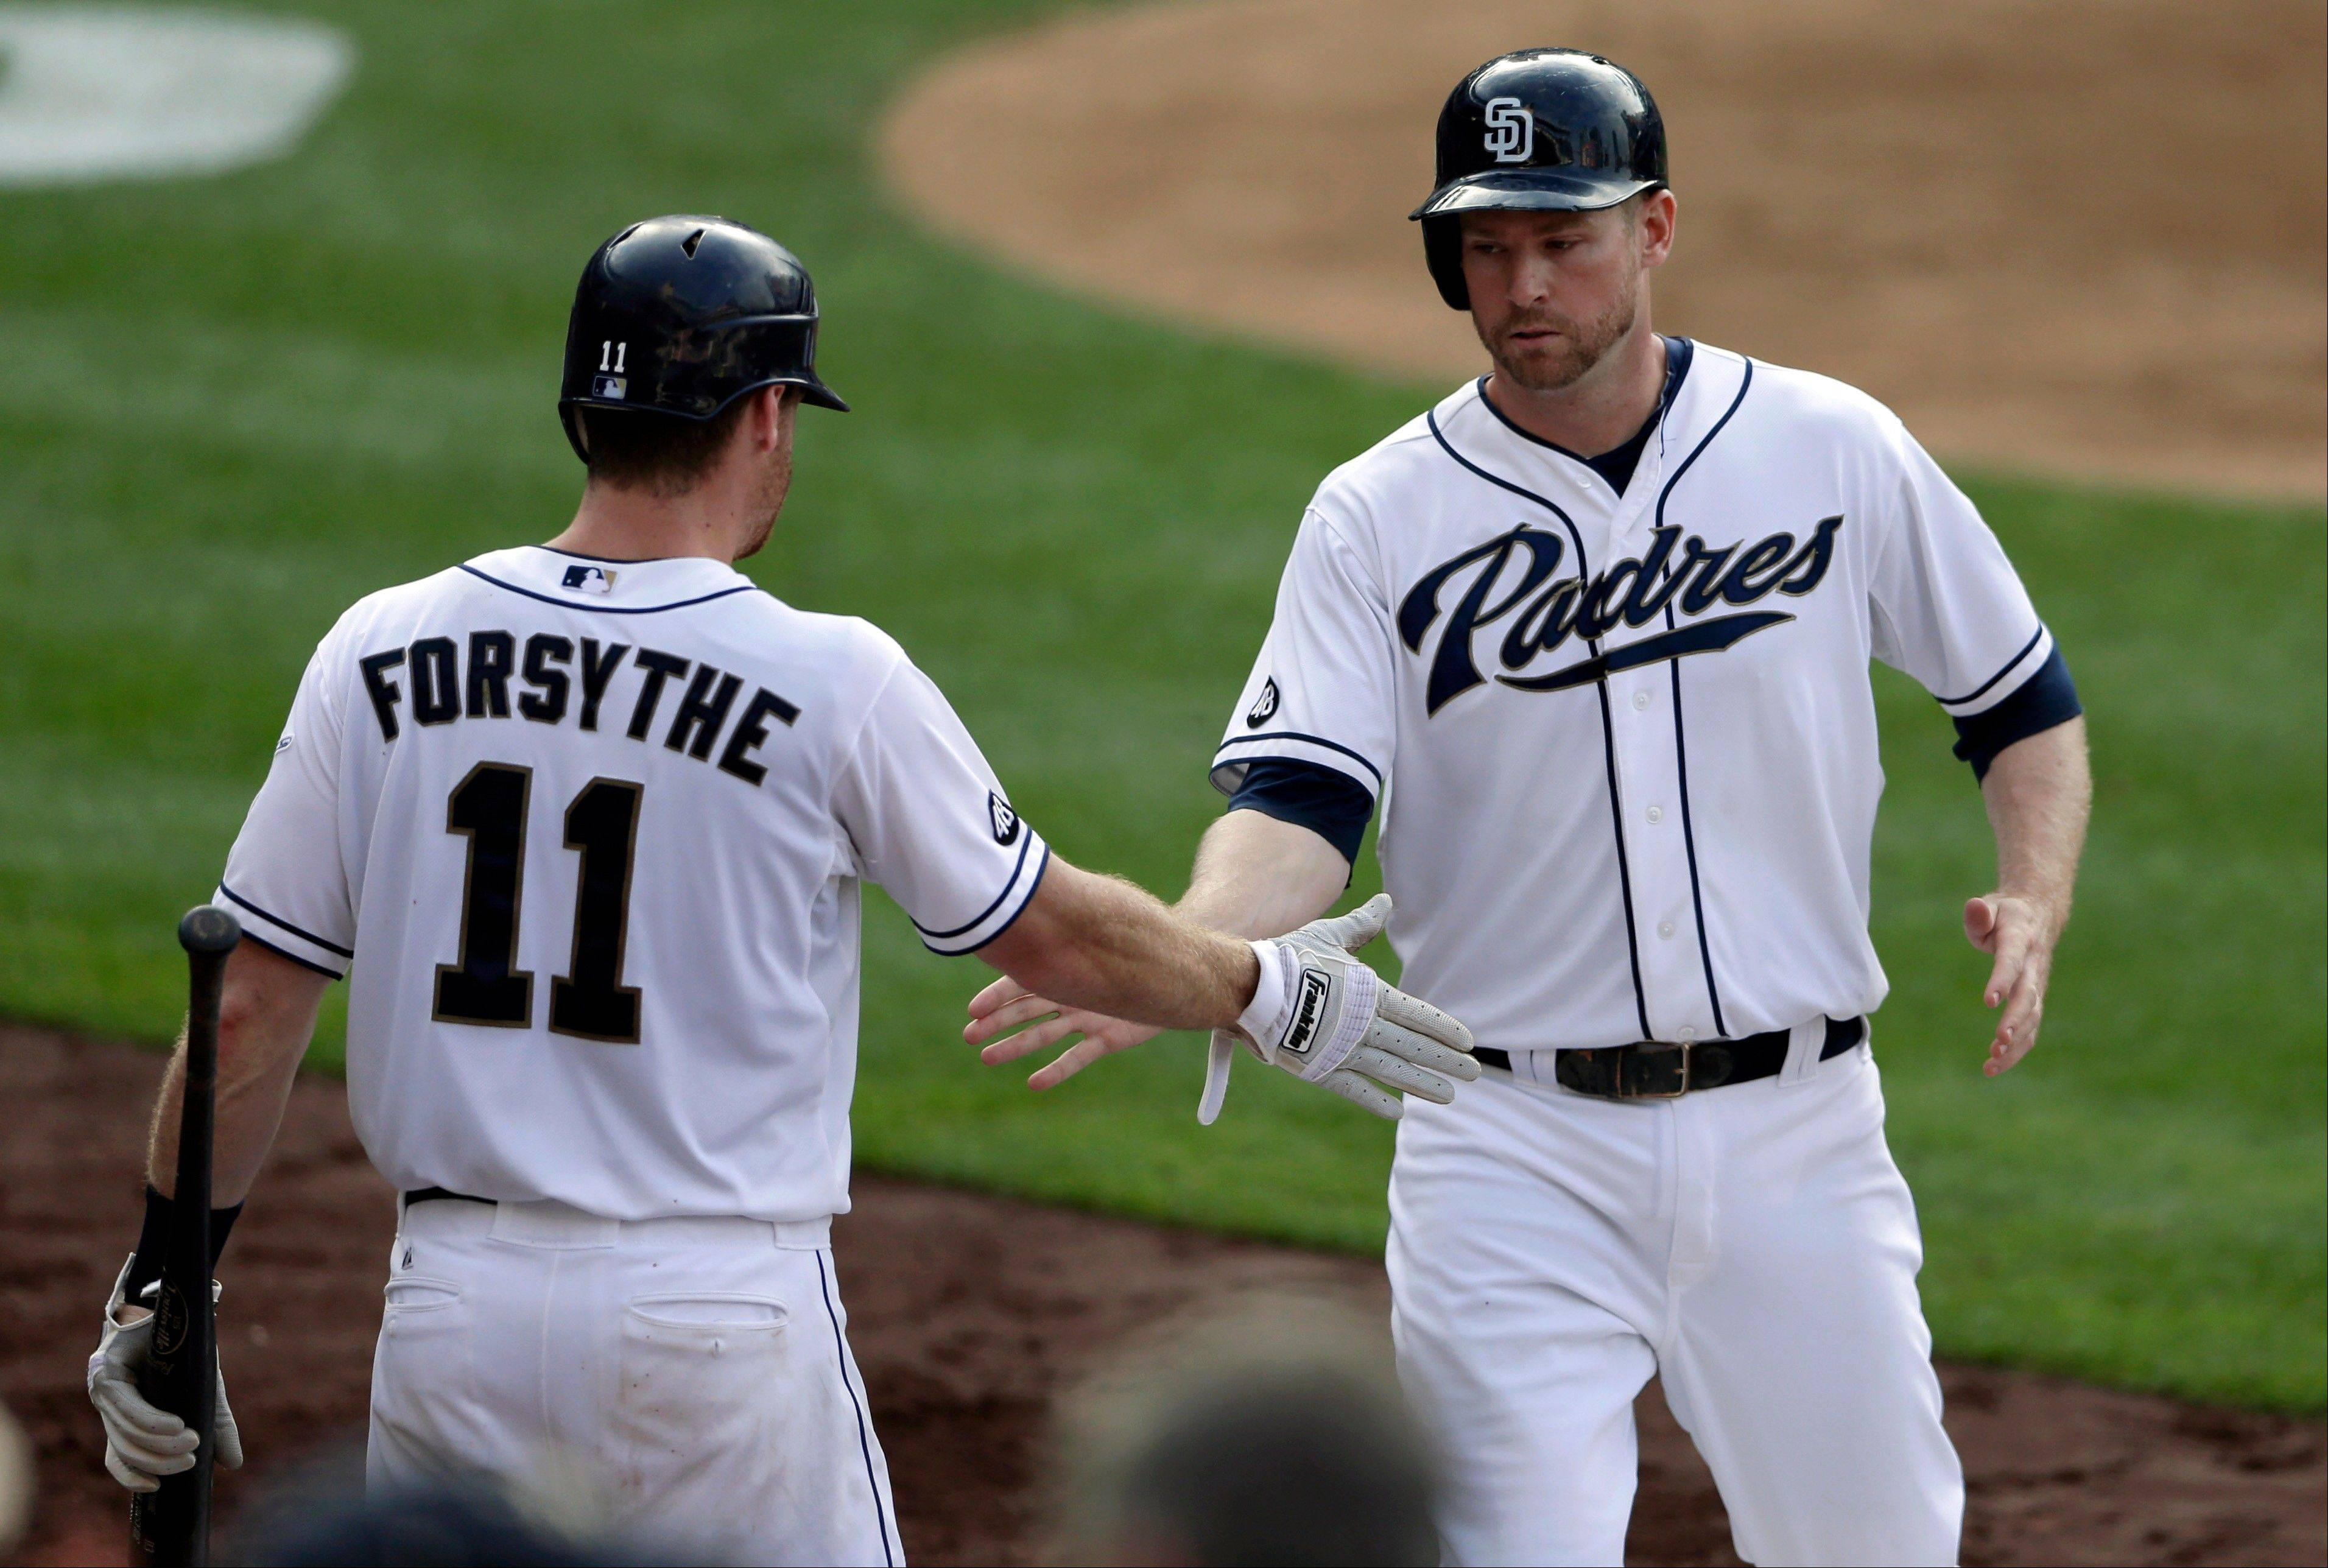 The Padres' Chase Headley, right, is congratulated by teammate Logan Forsythe (11) after Headley scored during the sixth inning Wednesday at home against the Cardinals.